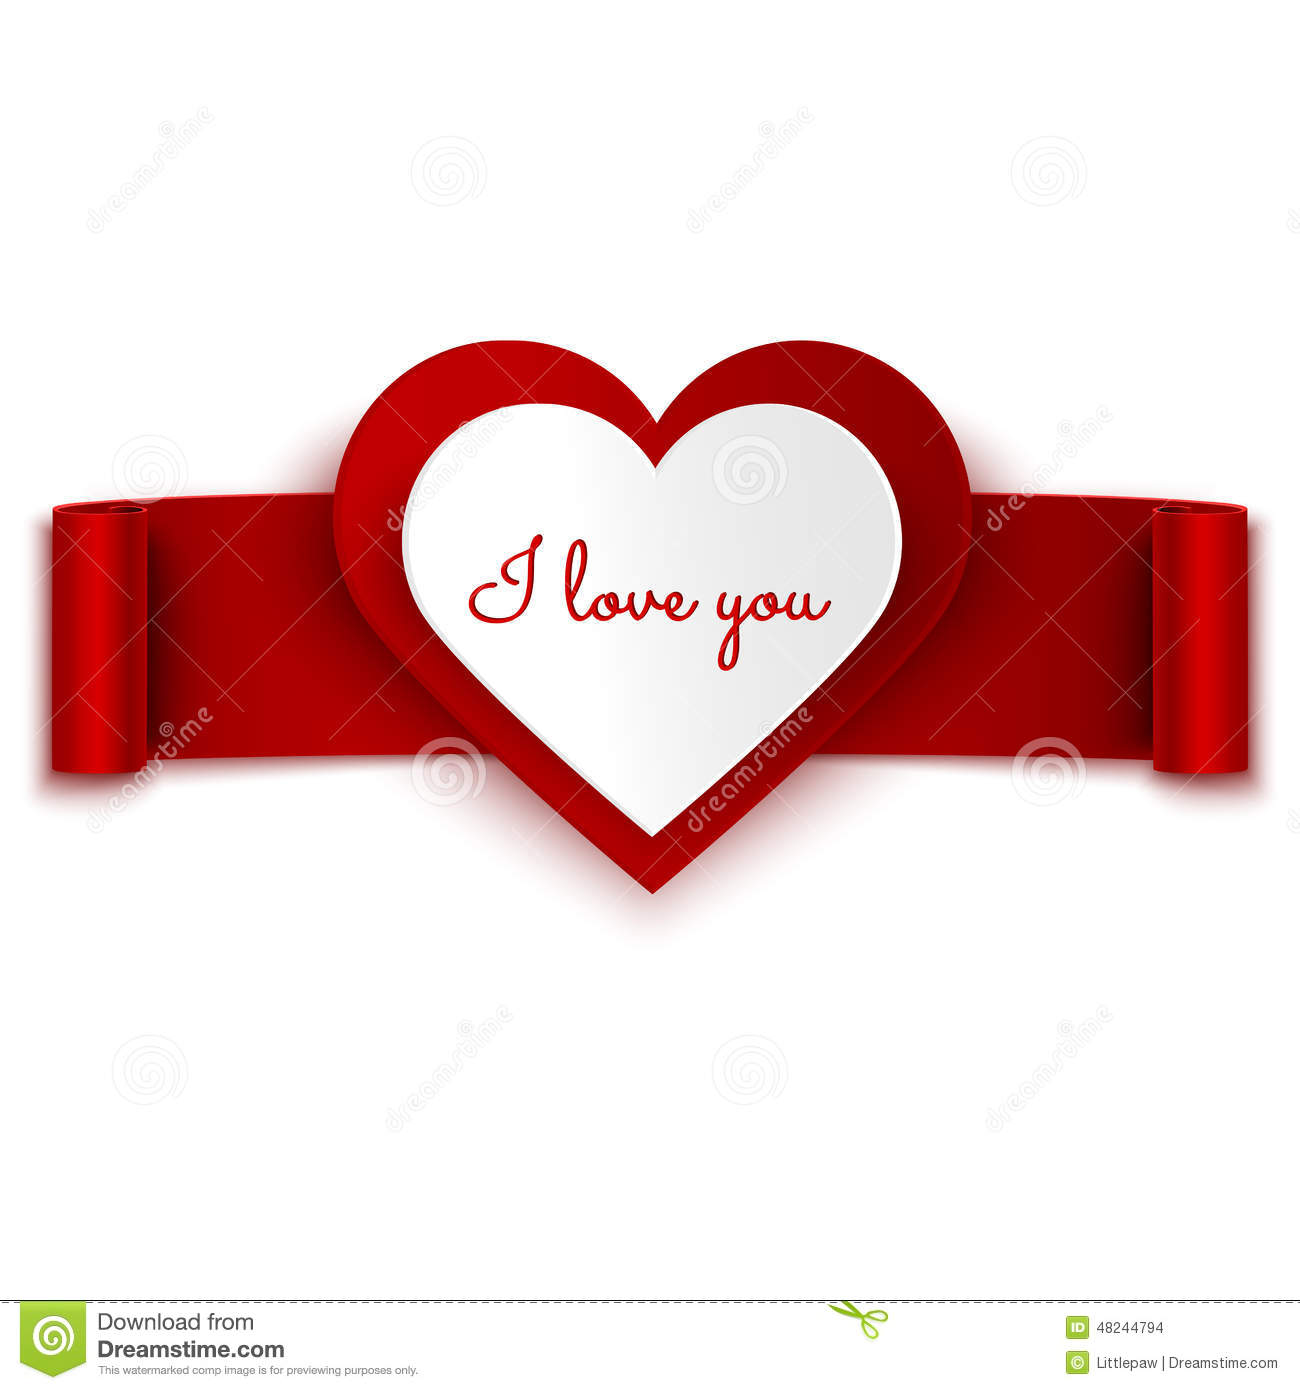 i love you text on heart and red ribbon banner isolated on white